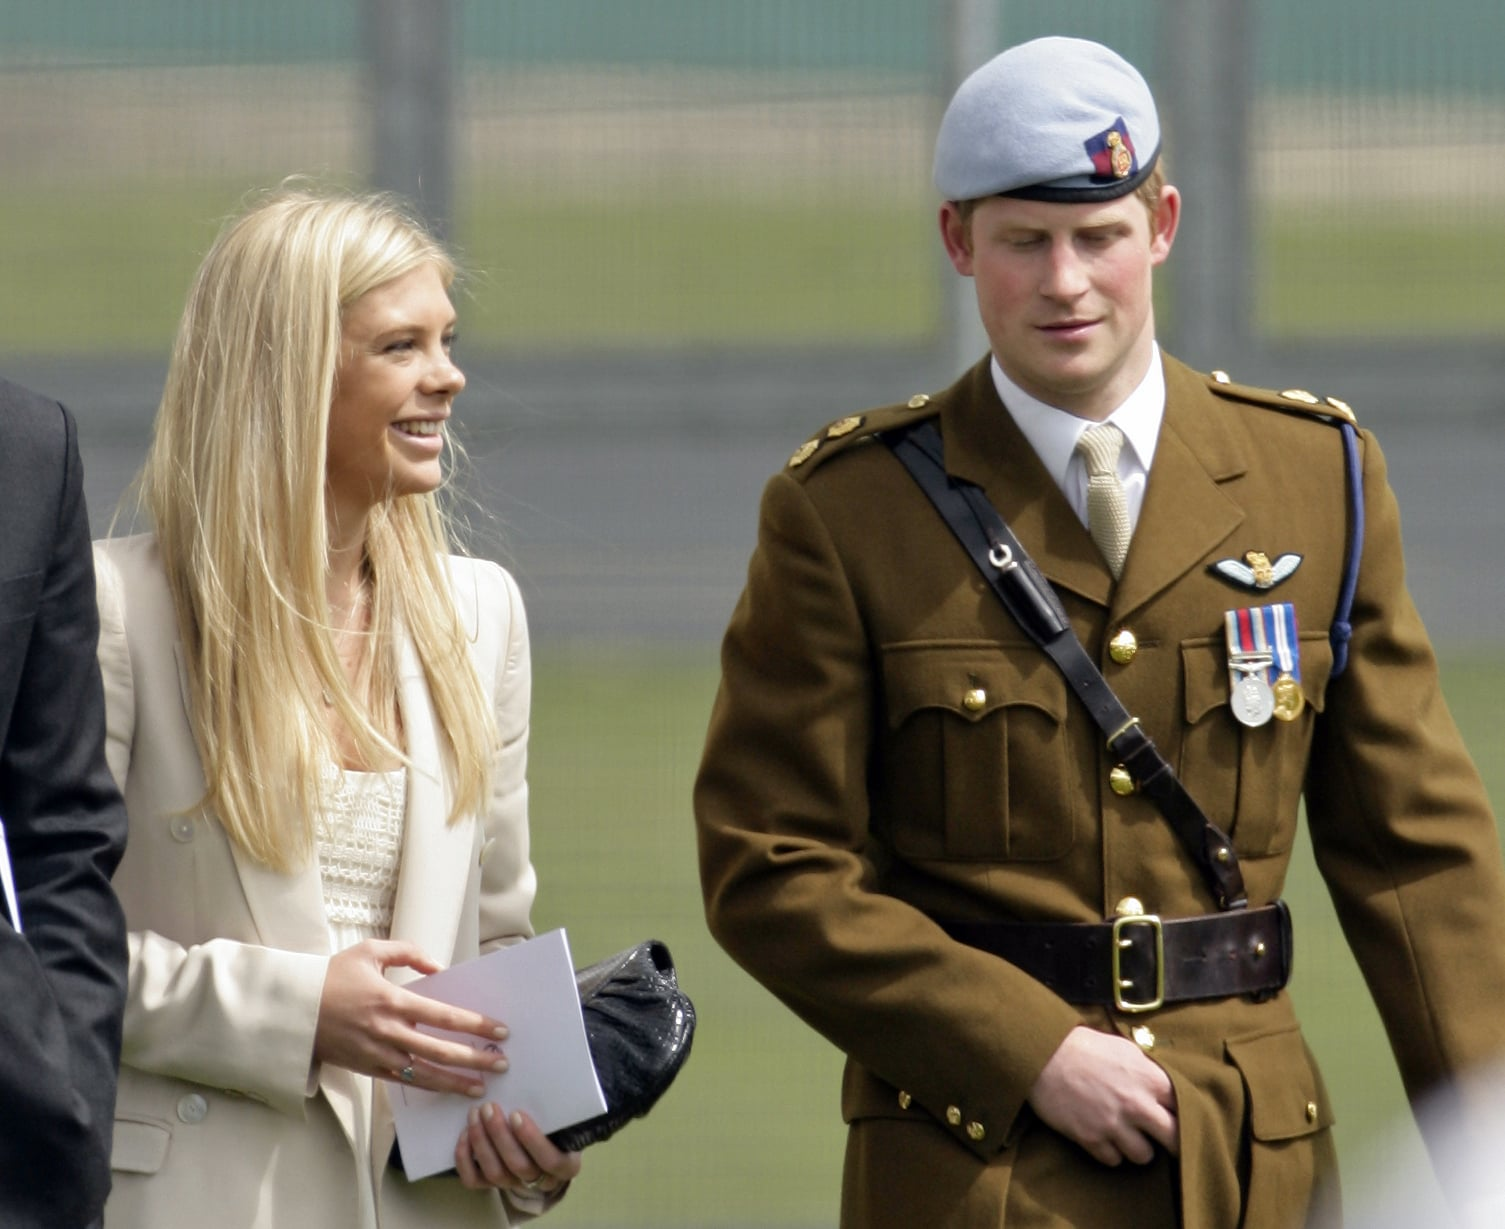 ANDOVER, UNITED KINGDOM - MAY 07: (EMBARGOED FOR PUBLICATION IN UK NEWSPAPERS UNTIL 48 HOURS AFTER CREATE DATE AND TIME) Chelsy Davy and boyfriend HRH Prince Harry attend Harry's Army Air Corps pilots course graduation ceremony at the Museum of Army Flying on May 7, 2010 in Andover, England. (Photo by Indigo/Getty Images)